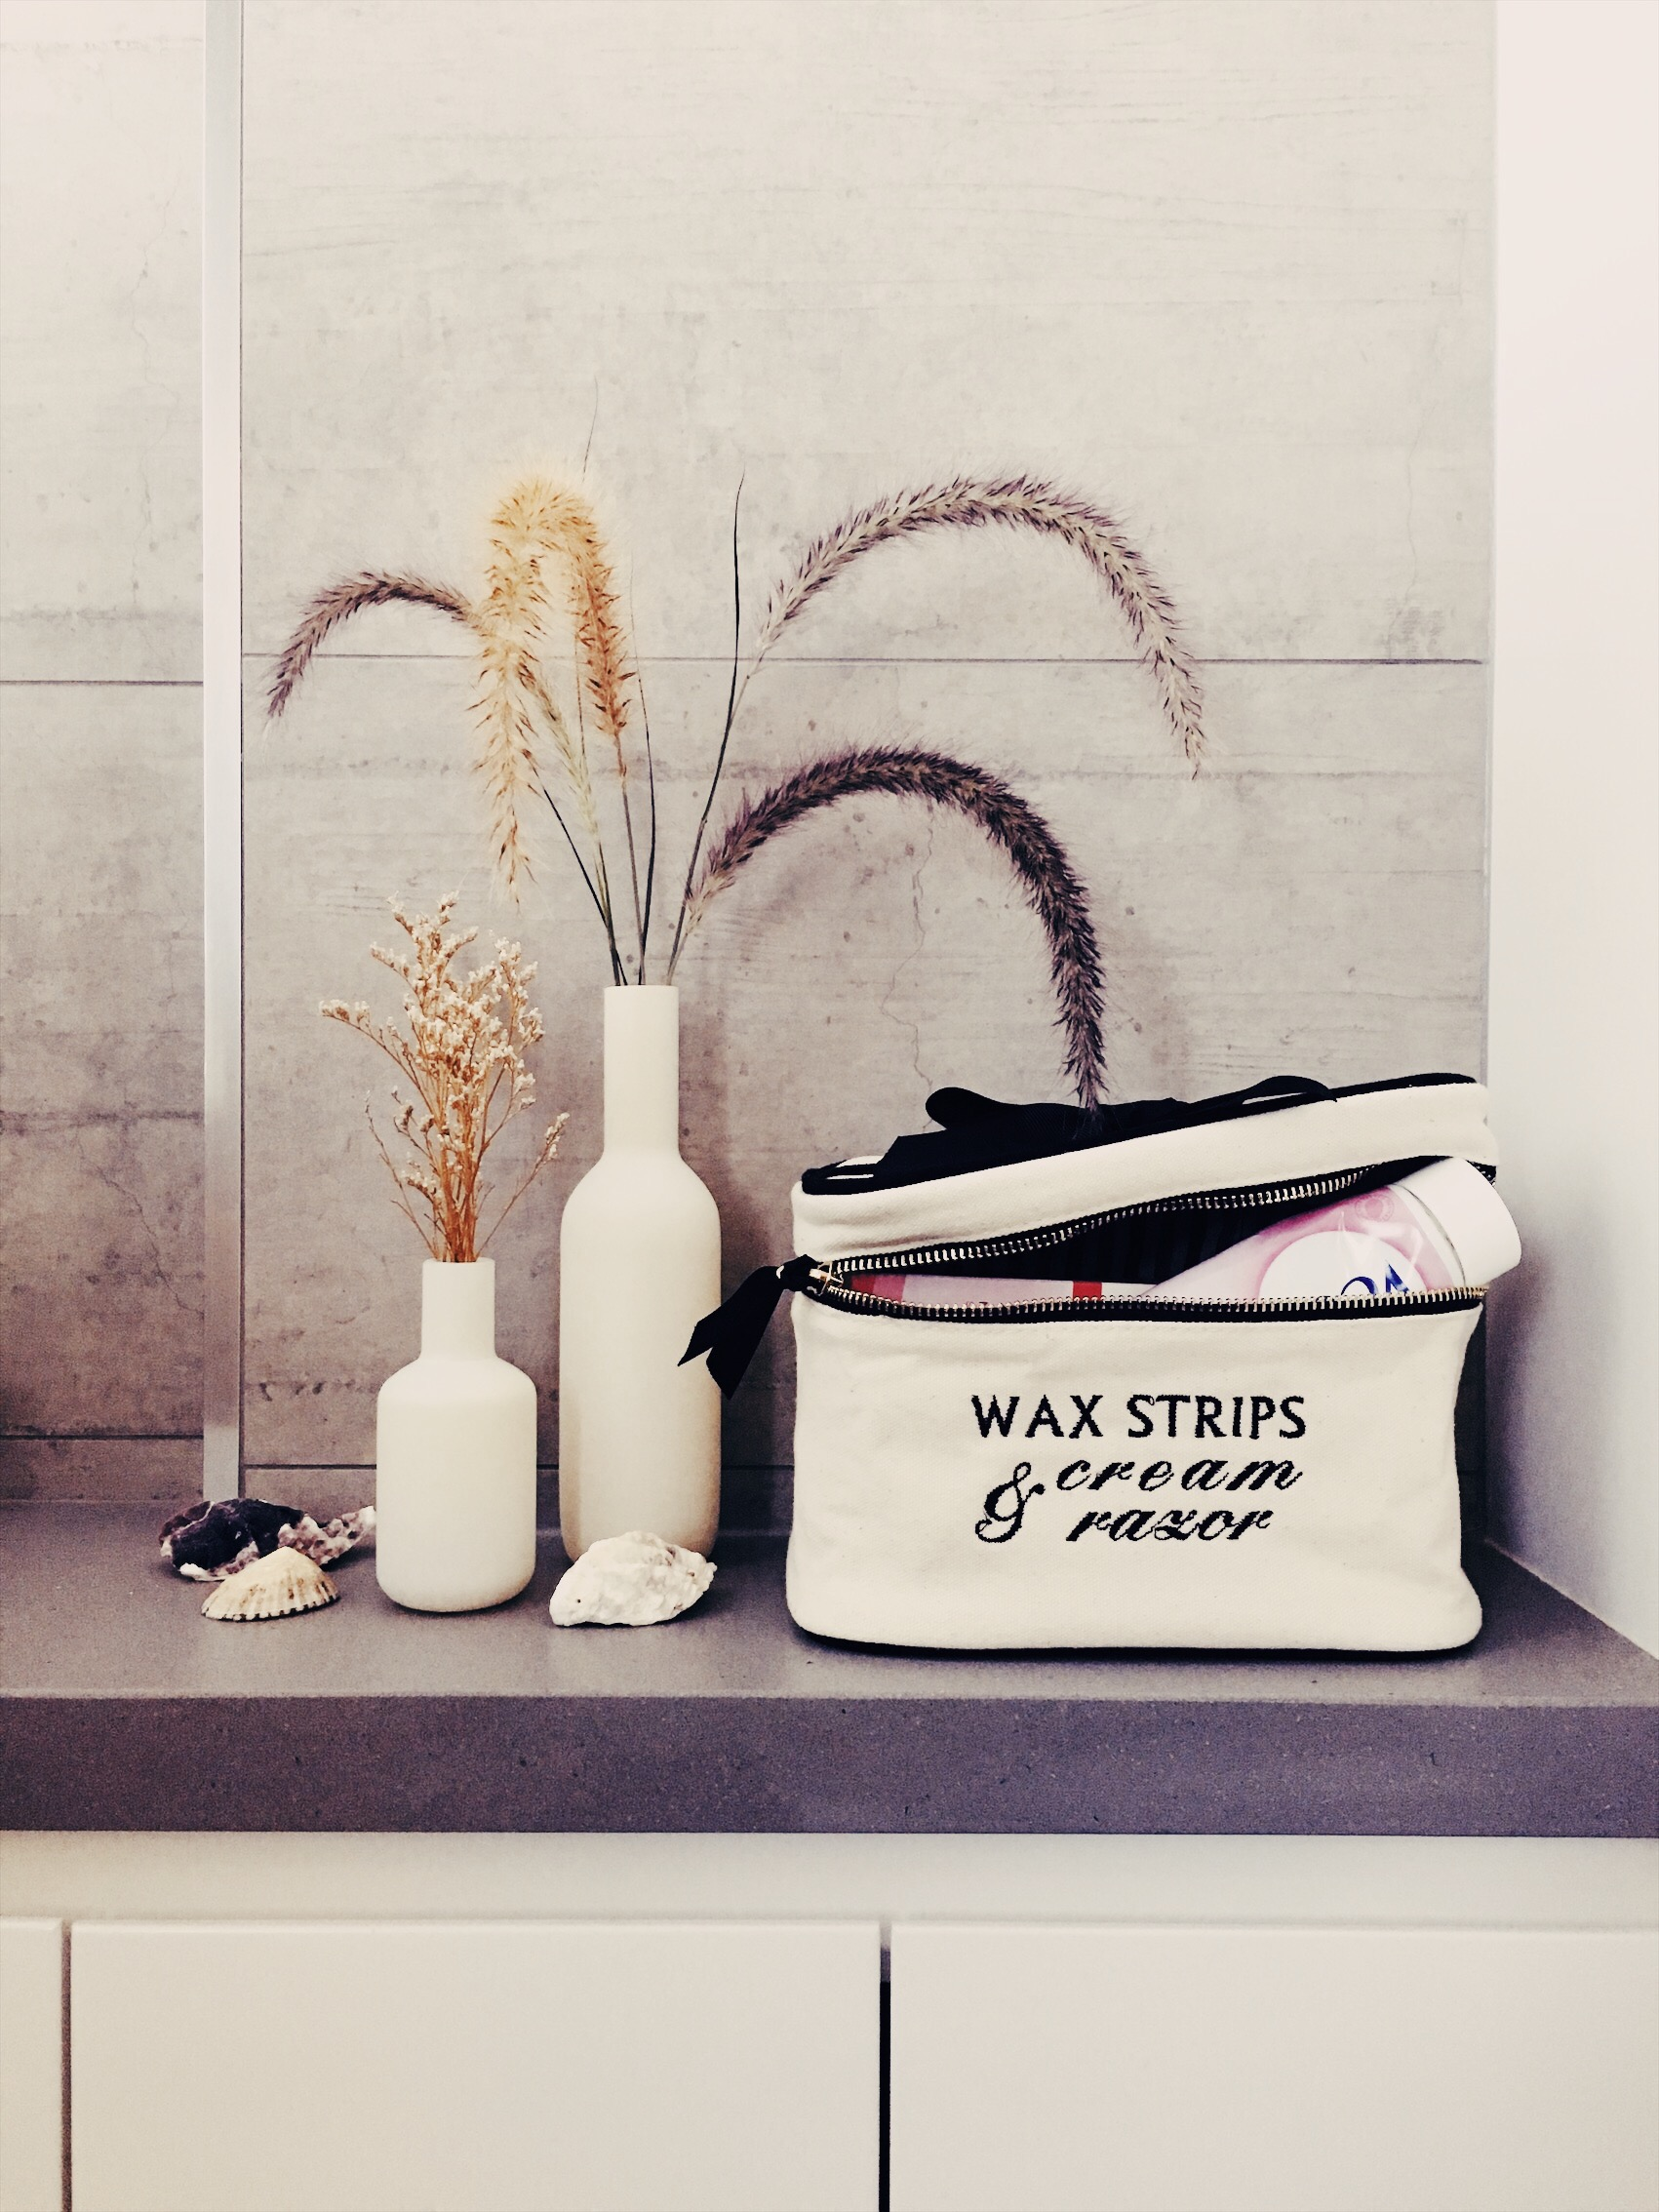 store your products in style - Fellow designers, we've reached the end of our list. However, this tip may be one of the most important ones yet: the importance of storing your items in style. That half-empty toothpaste tube laying around isn't gonna do much for your bathroom. Invest in some stylish, functional and sustainable storage items. Everything from a cute box to a basket or an organizing bag will do wonders for your space. And the best part, it doesn't have to cost you much at all.See picture for a customized version of our Blank Large Beauty Box, and don't forget, this box can store whatever you need it to store. It's up to you and your imagination.Below, we have our Lotions & Potions Case next to our My Brushes Case. These cases have a laminated inner lining, which prevents the fabric from getting ruined from leaking lotions and creams. When they're not functioning as stylish storage on your shelves, they're both excellent travel partners.